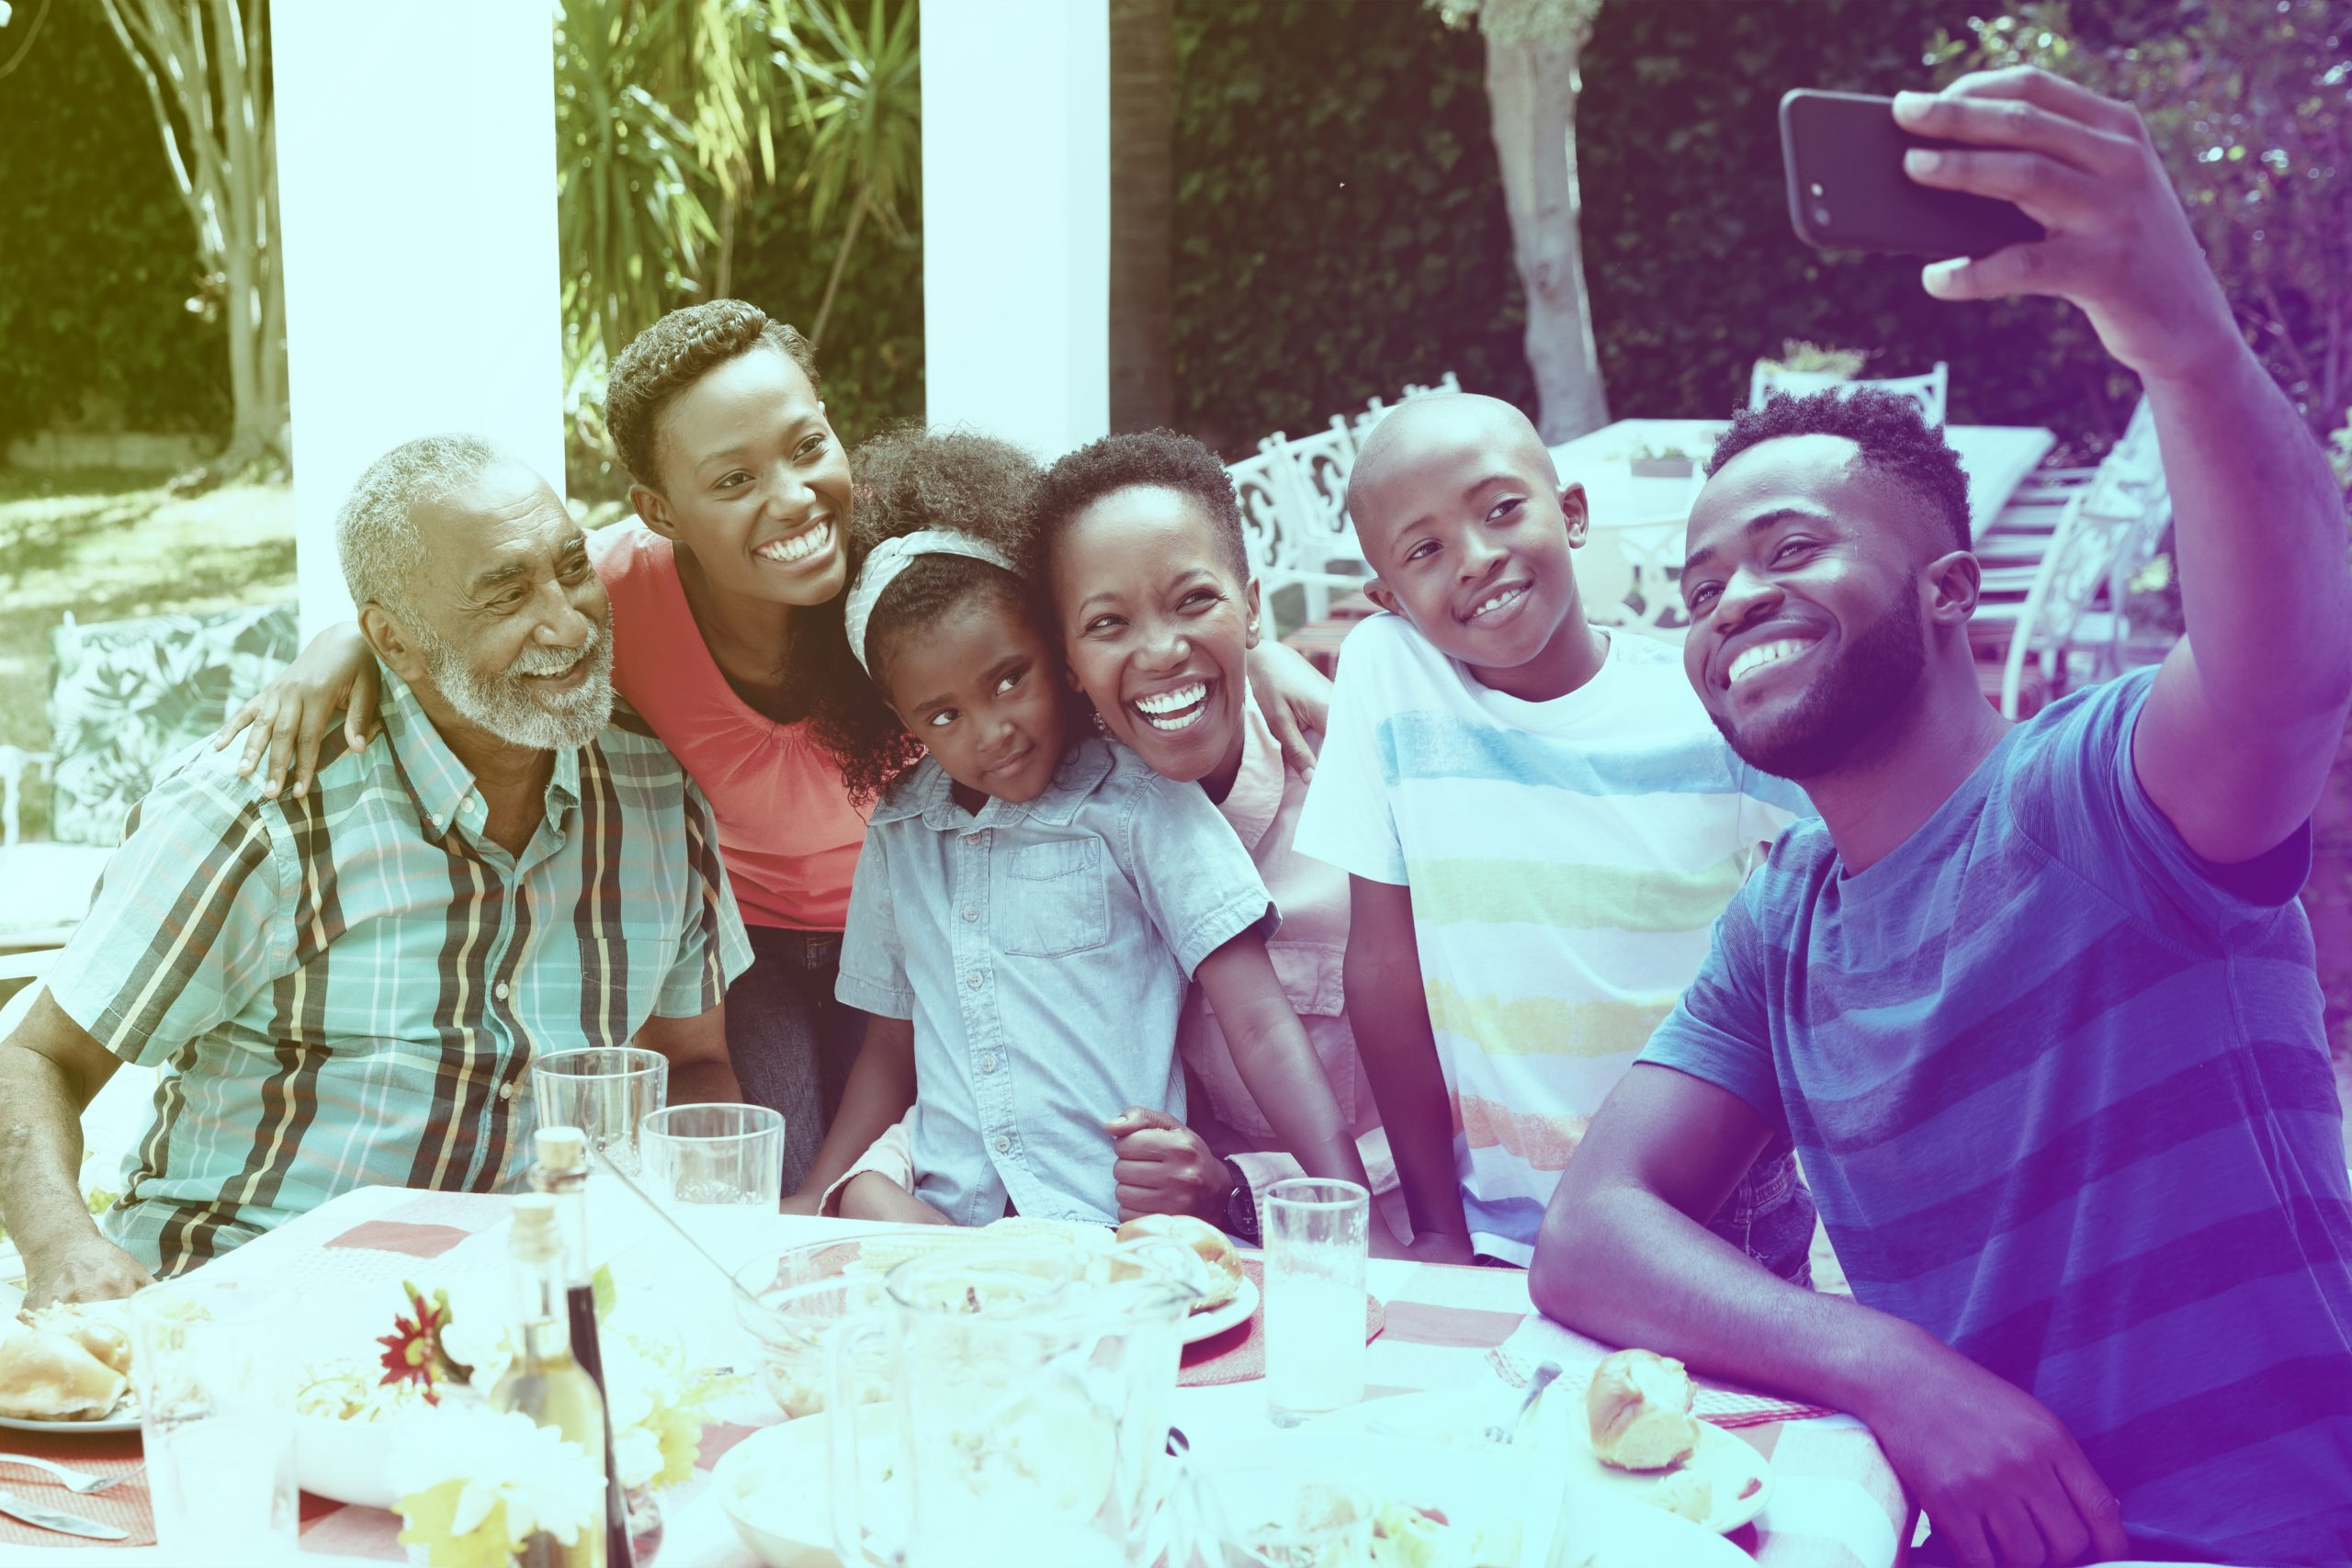 Tobagonian-family-taking-a-selfie-in-the-gar-UH867X3